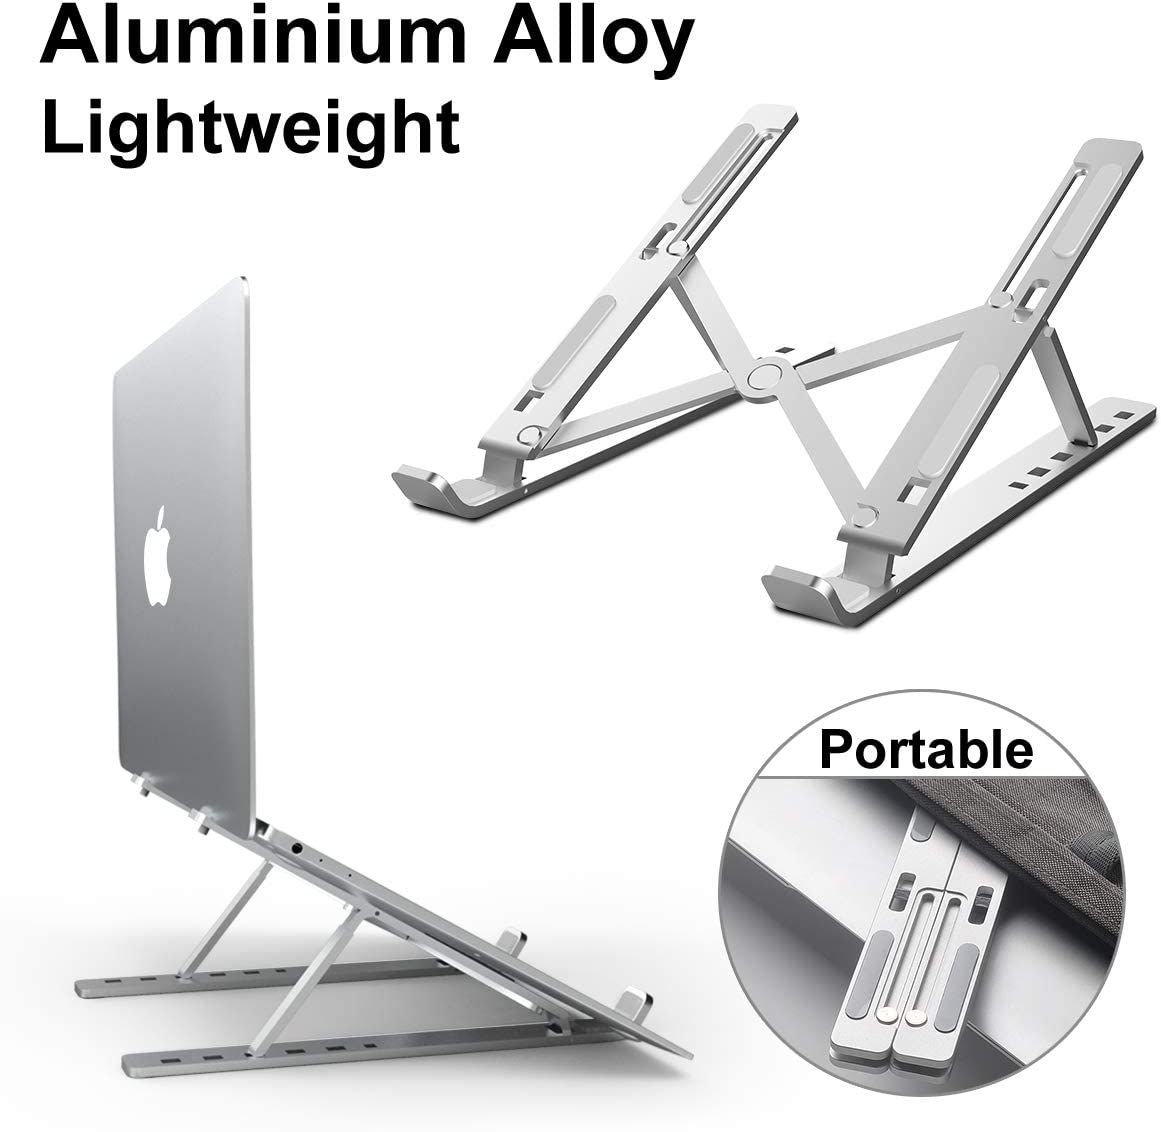 "Laptop Stand Adjustable, DOB SECHS Aluminum 6-Levels Height Foldable Portable Laptop Riser, Ergonomic Computer Stand, Ventilated Laptop Riser for MacBook, Notebook, Lenovo, Dell, More 10-15.6""Laptops"